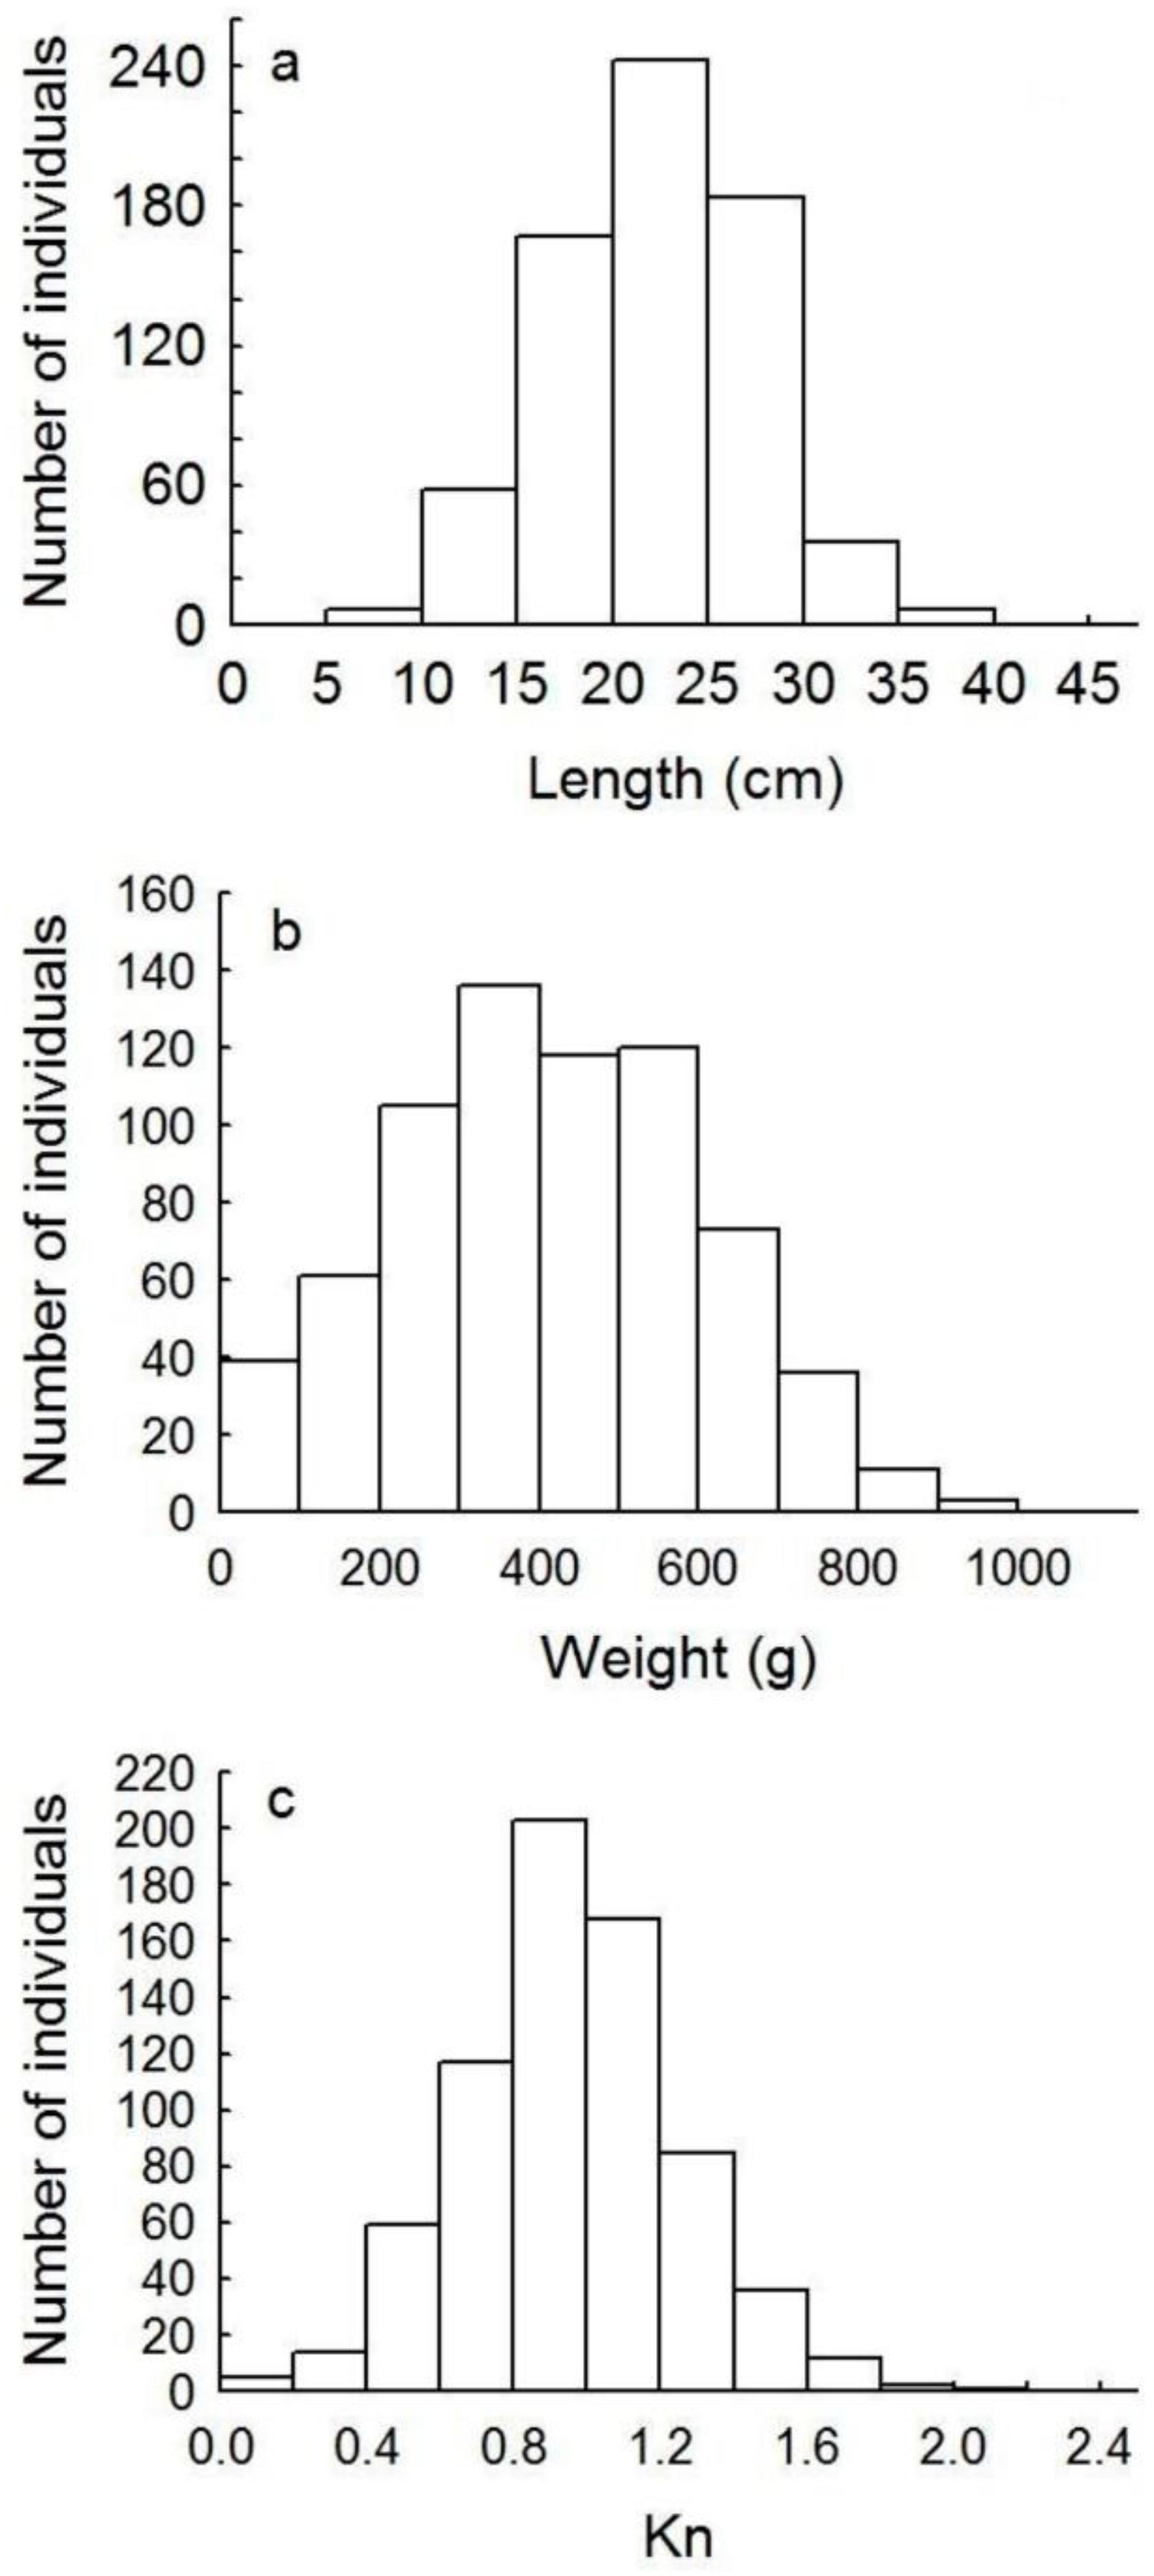 Size and relative condition index of the brown sea cucumber